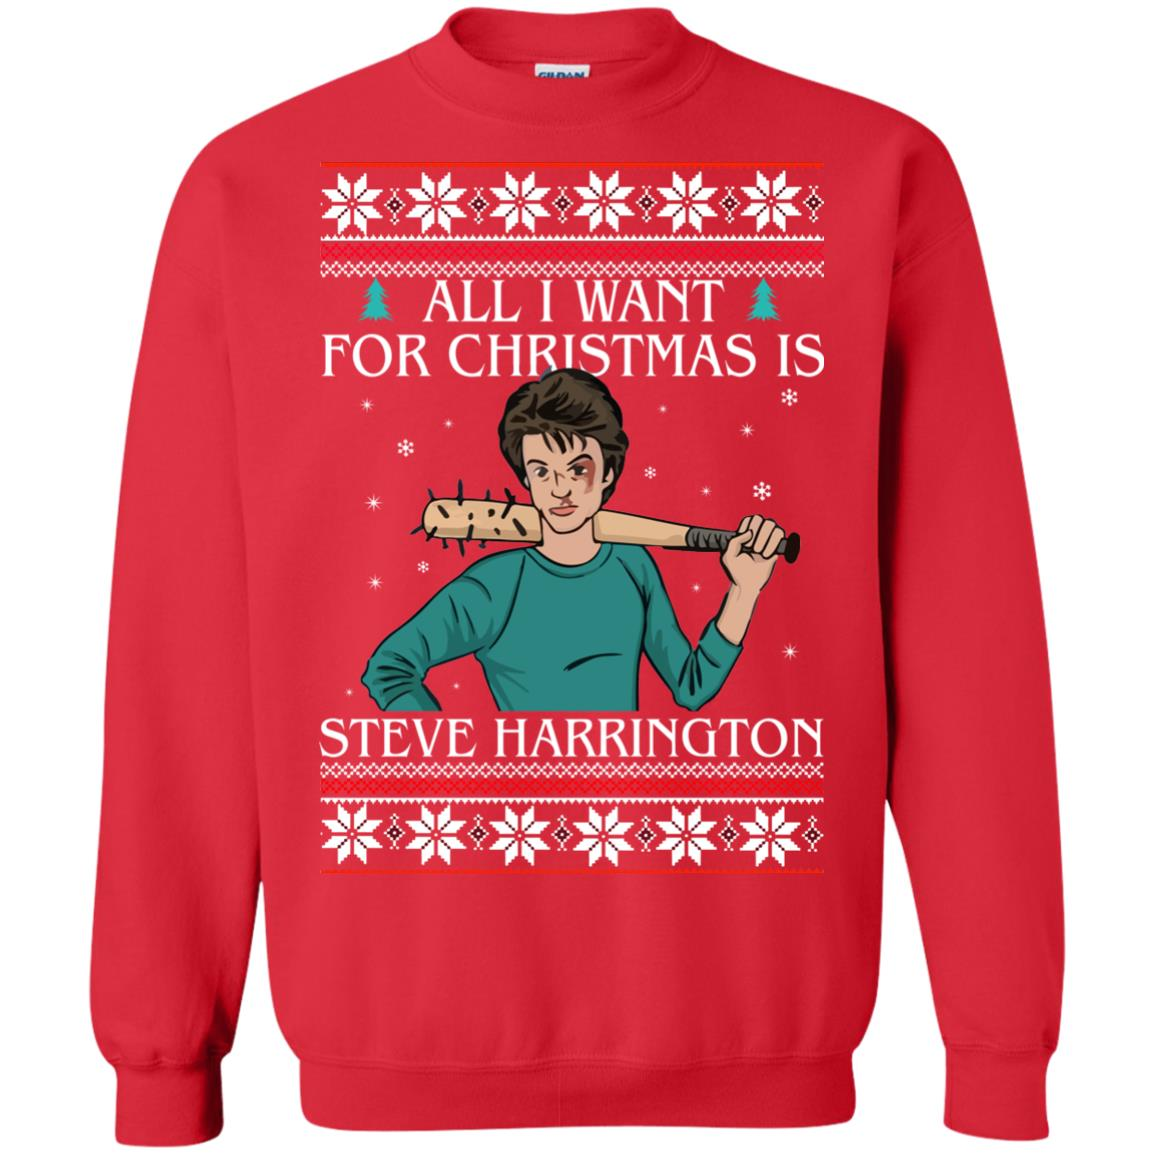 image 4036 - All I want for Christmas is Steve Harrington Ugly Sweater